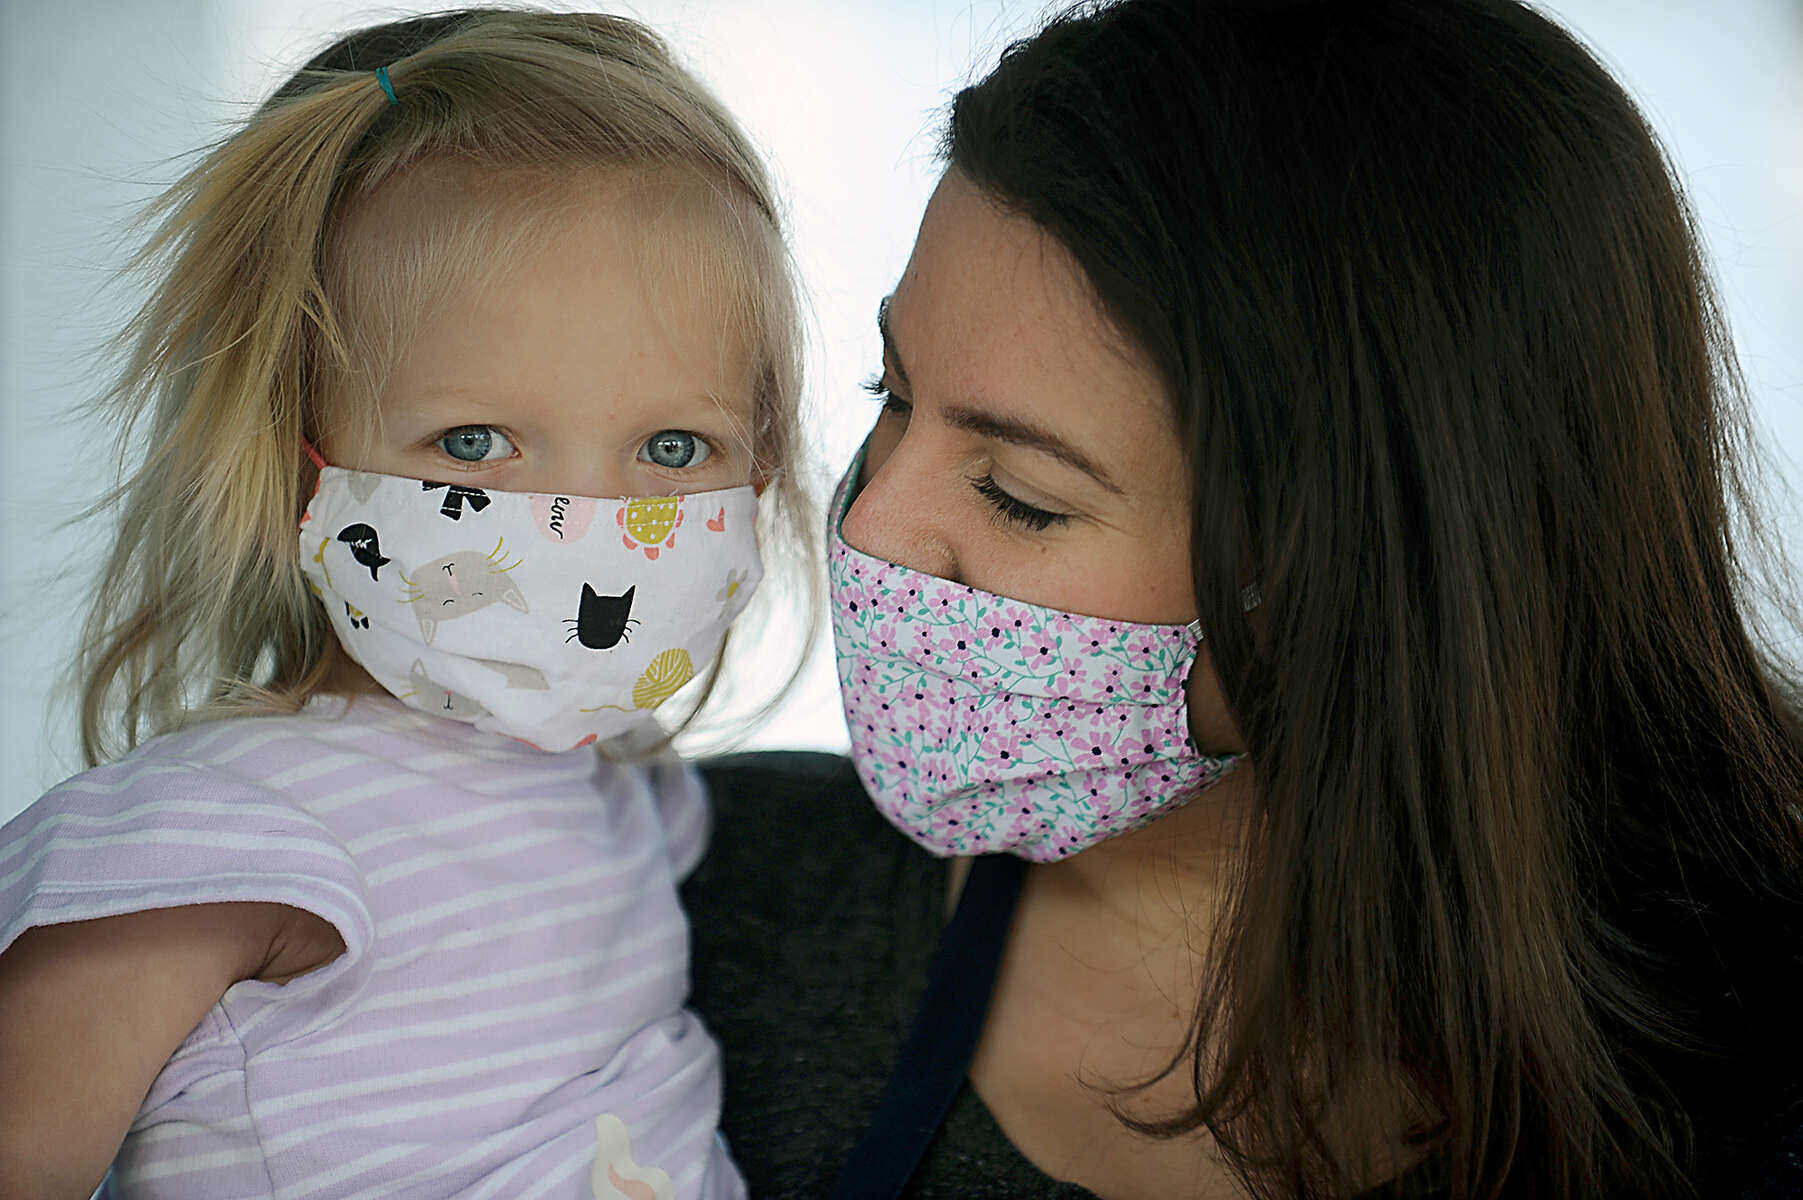 5/5/20-- NATICK--  Jess Blazejewski with her one-year-old daughter, Lila. Blazejewski's Natick porch is the drop off and pick up location for Massachusetts Face Shield, started by her, her mother, and sister to help solve the PPE shortage for front line health care workers fighting COVID-19. So far they have donated 1,657 face shields statewide. Their goal is 15,000.   [Daily News and Wicked Local Staff Photo/Art Illman]